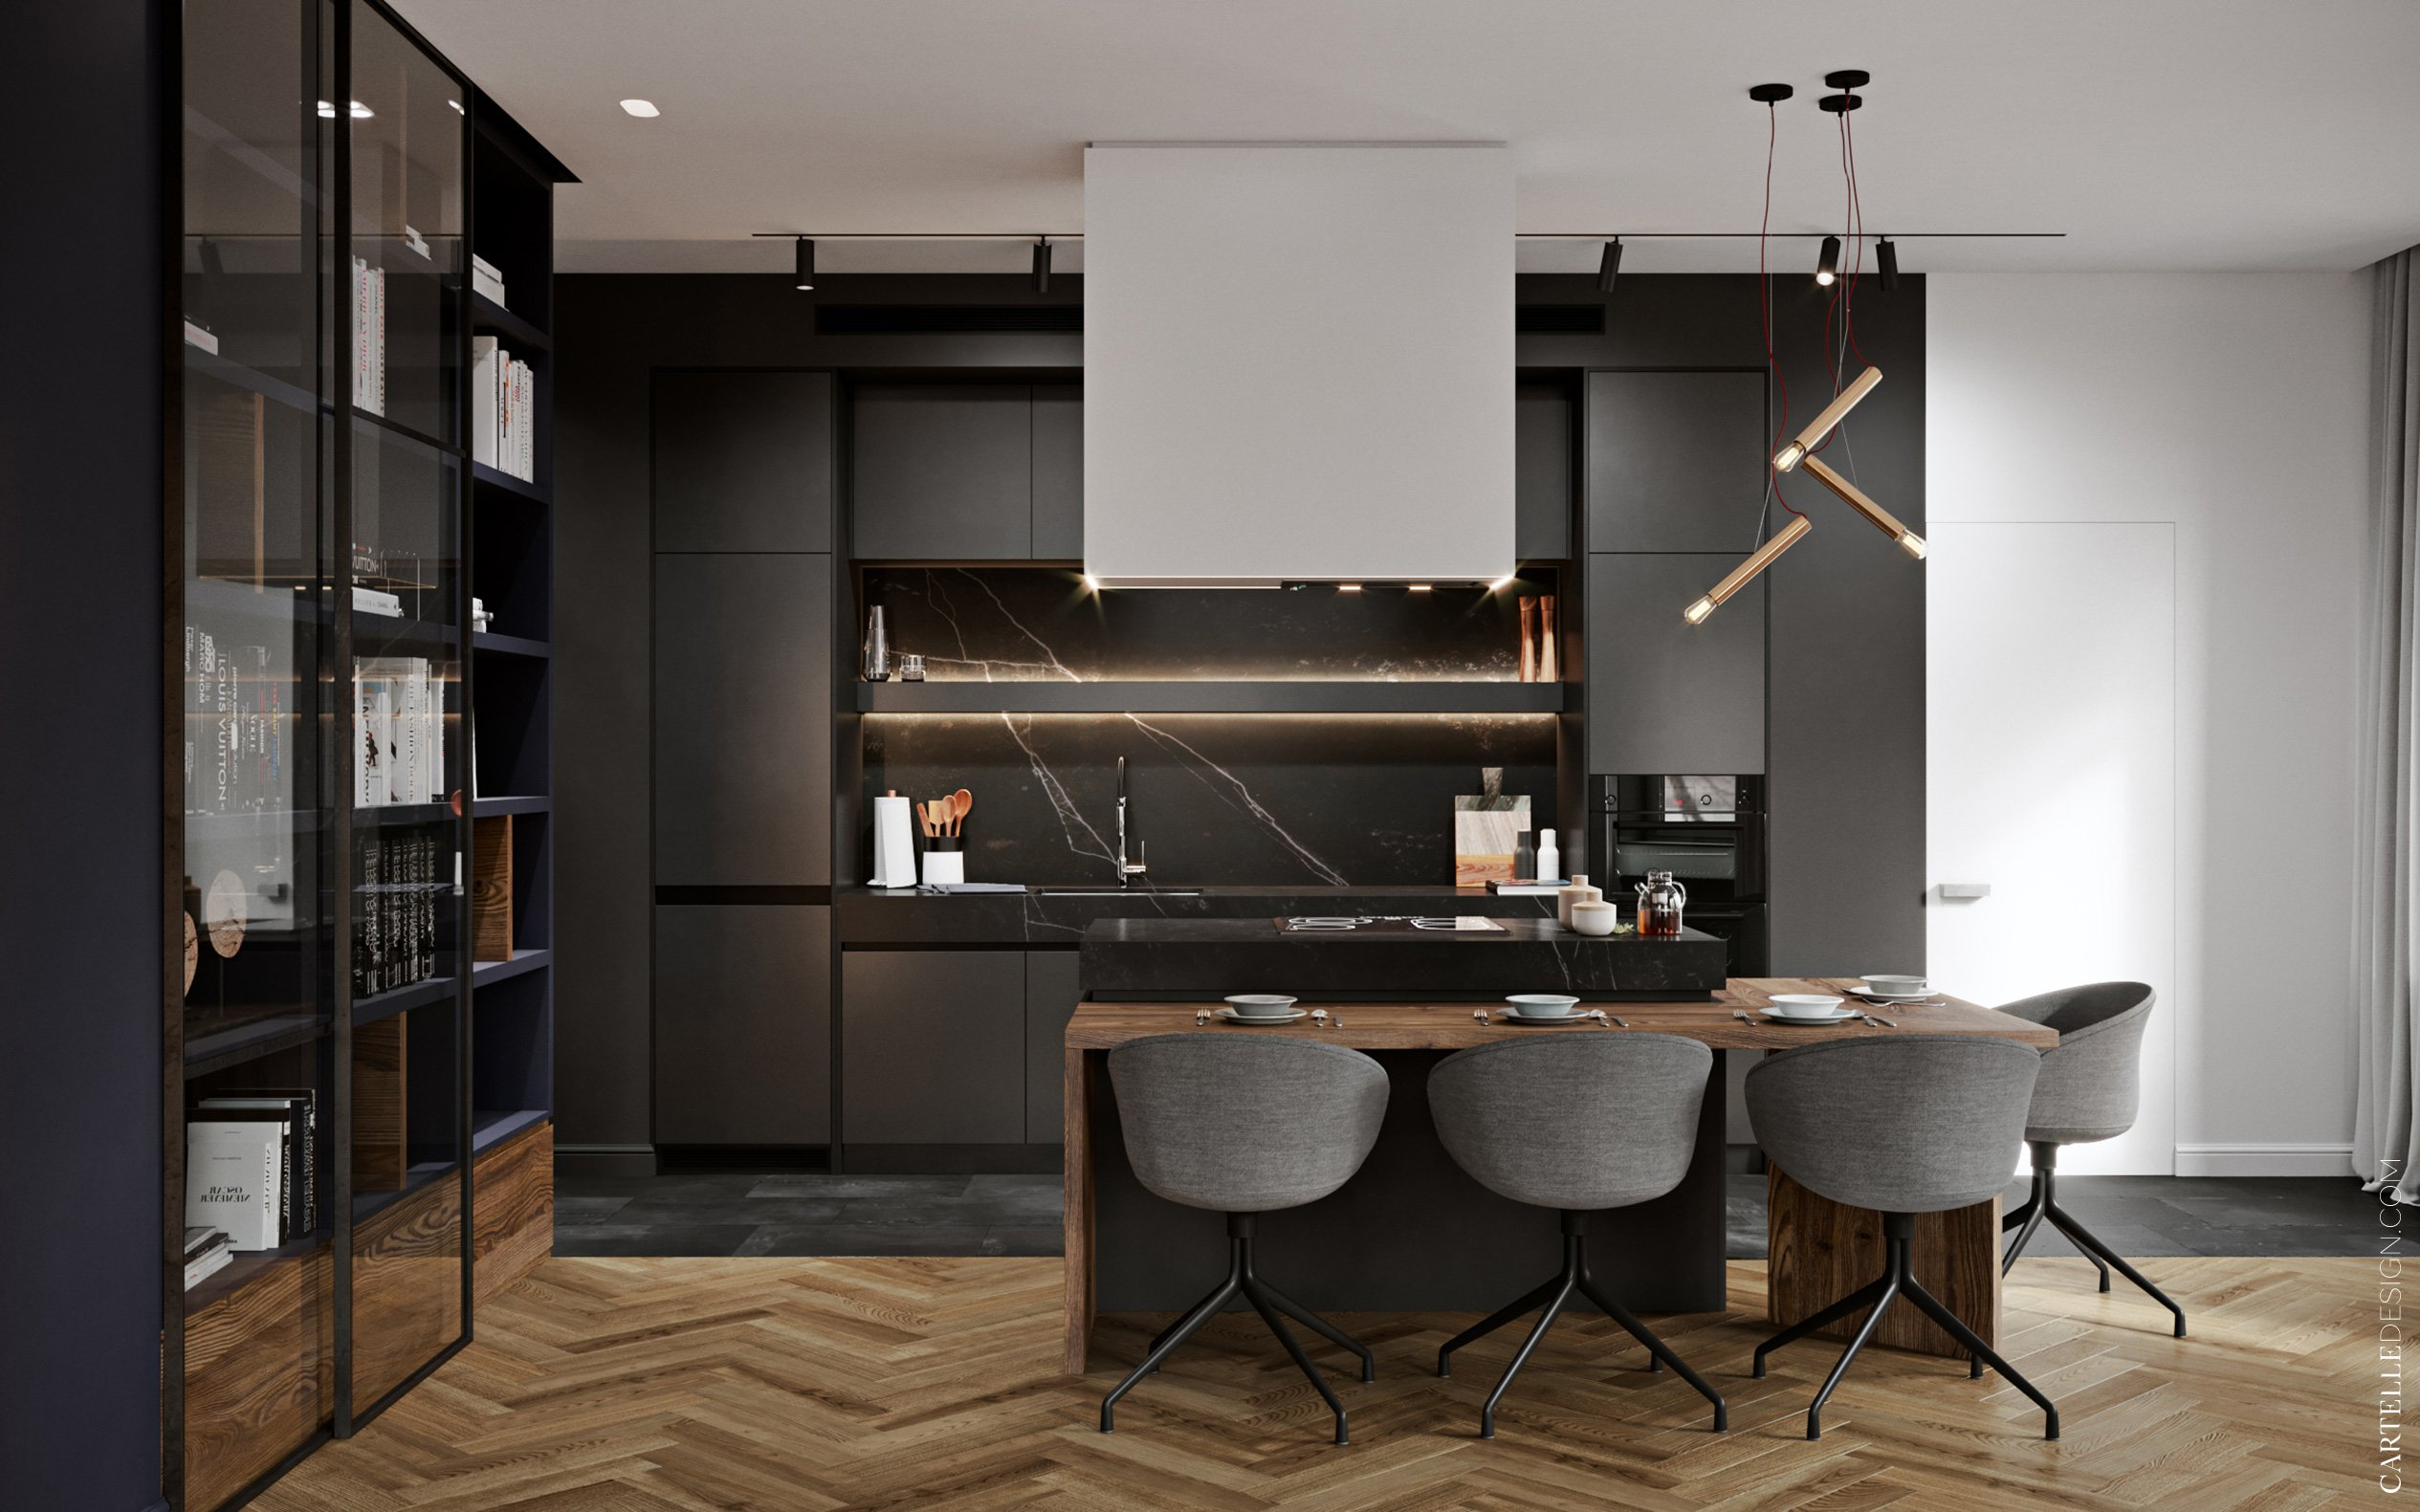 cartelledesign_apartment_114_02